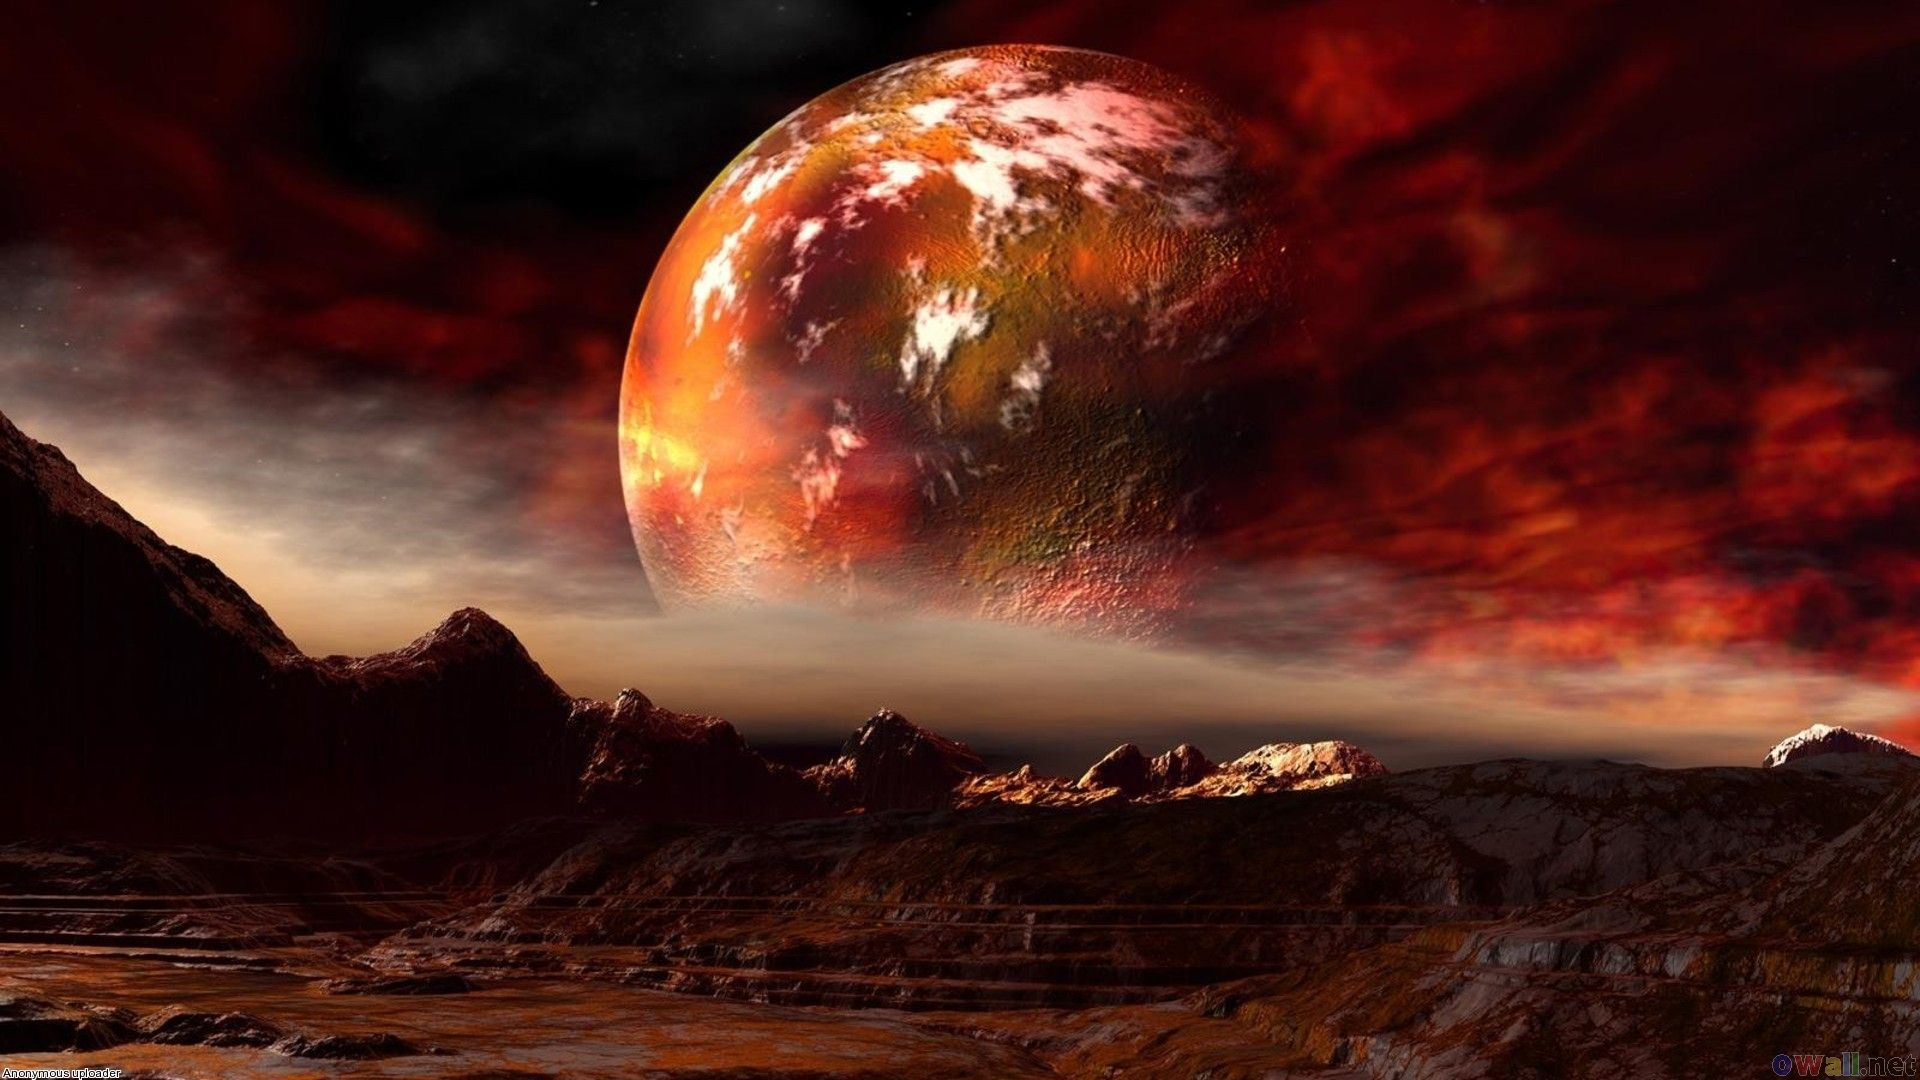 A Red Planet Hangs Low In The Sky Mars Wallpaper Planets Wallpaper Clouds